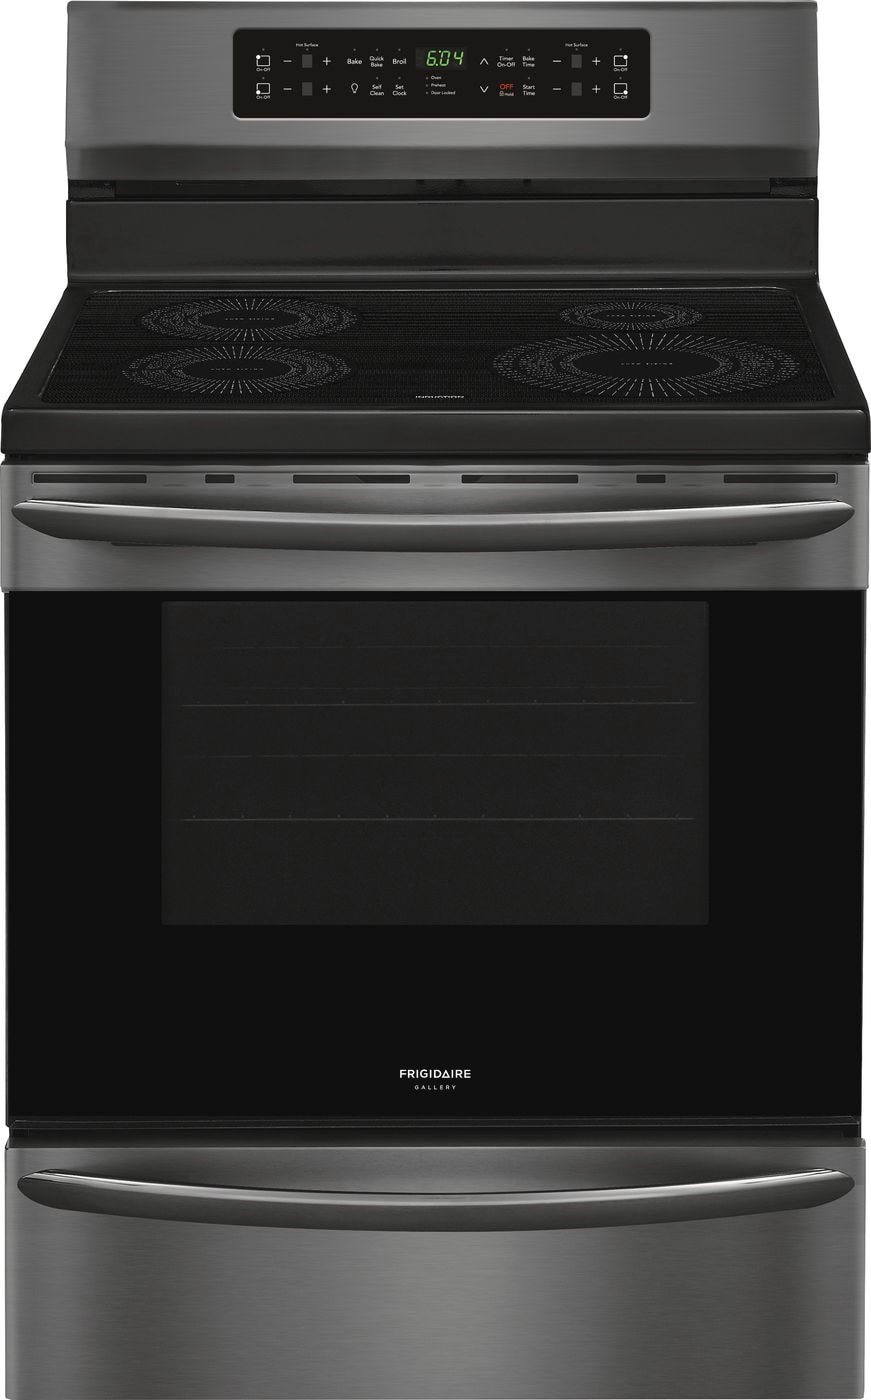 "Frigidaire Gallery 30"" Freestanding Induction Range"